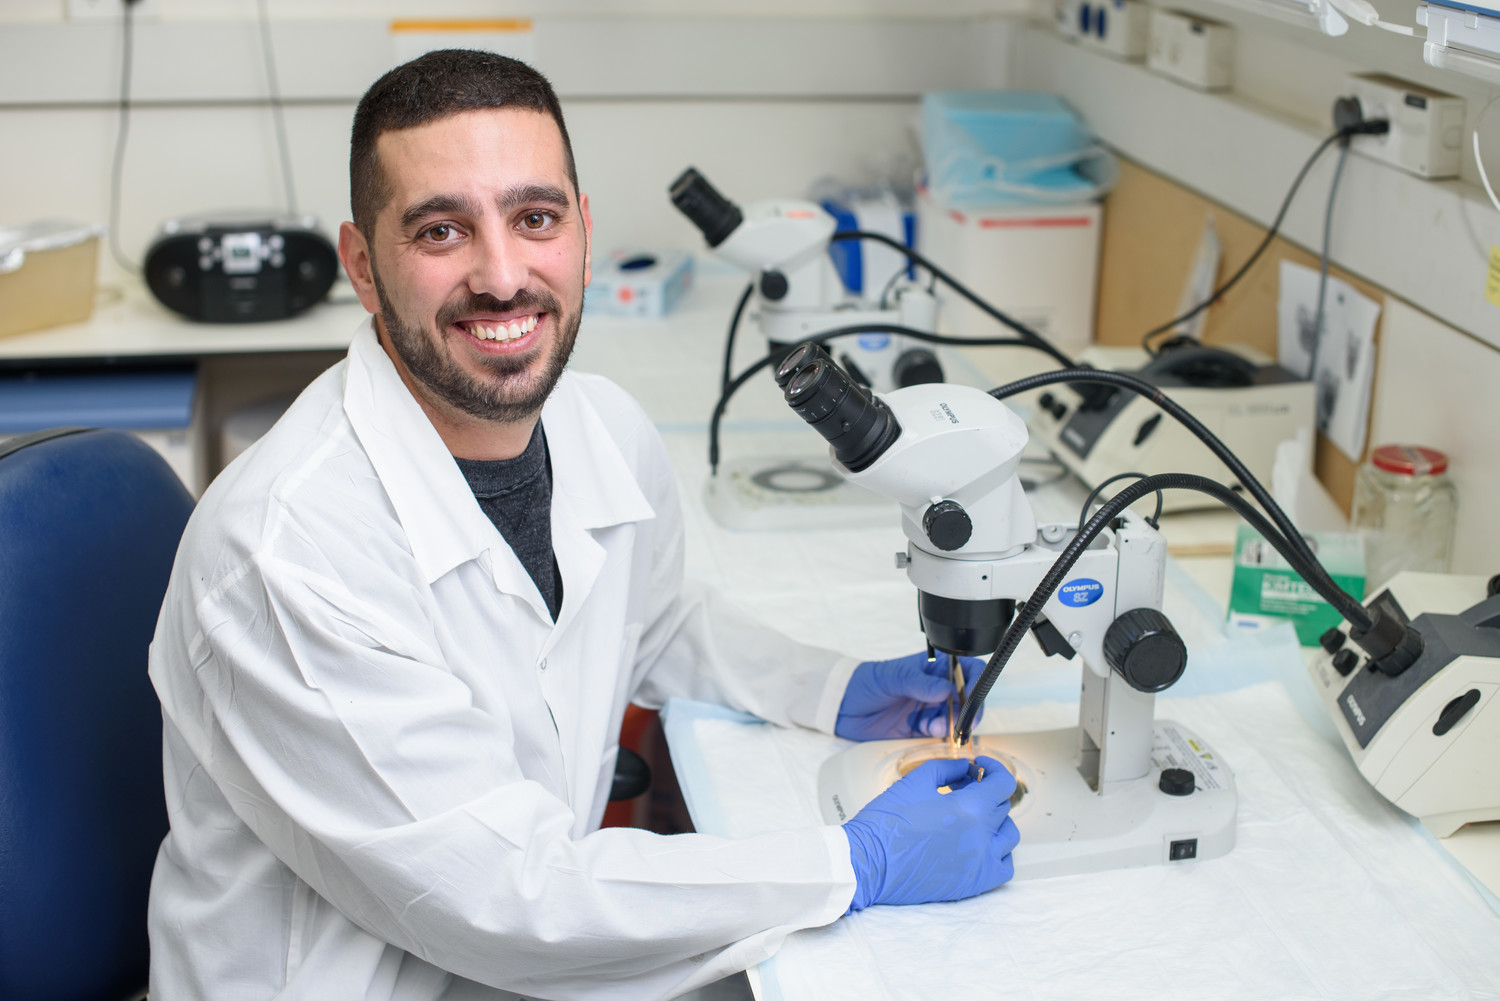 Doctoral student Amitai Mandelbaum is examining how abnormal microRNA behavior may contribute to the development of diabetes.